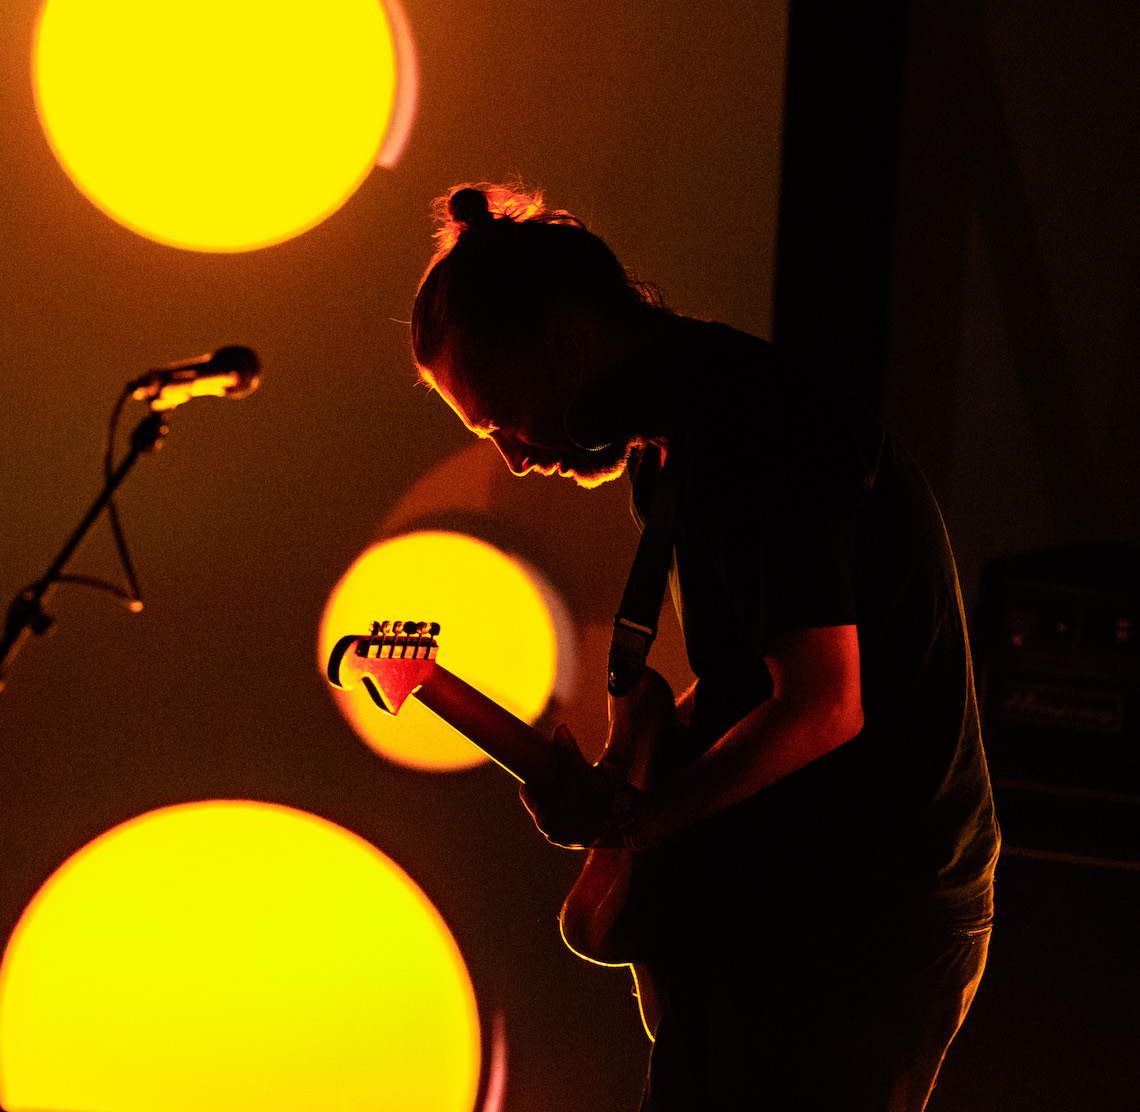 Thom York durante una performance live.